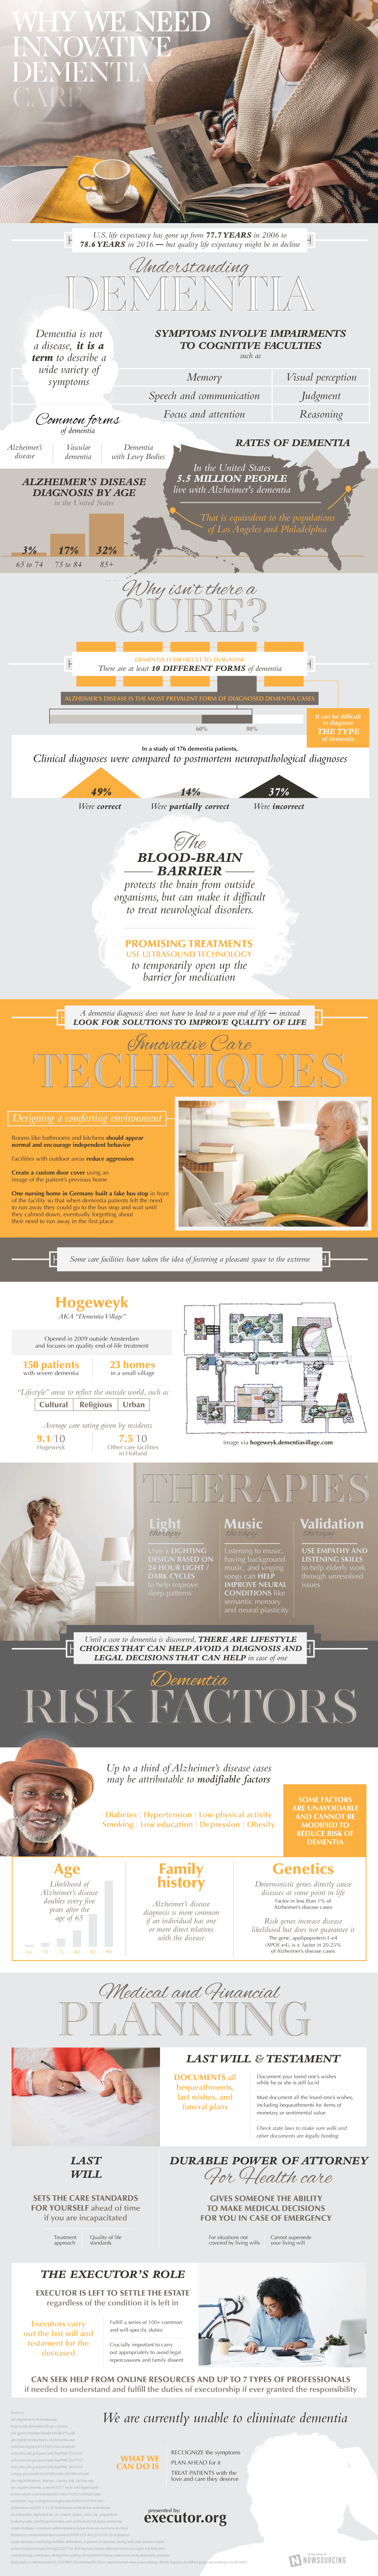 Innovative Dementia Care: Techniques and Therapies - Infographic